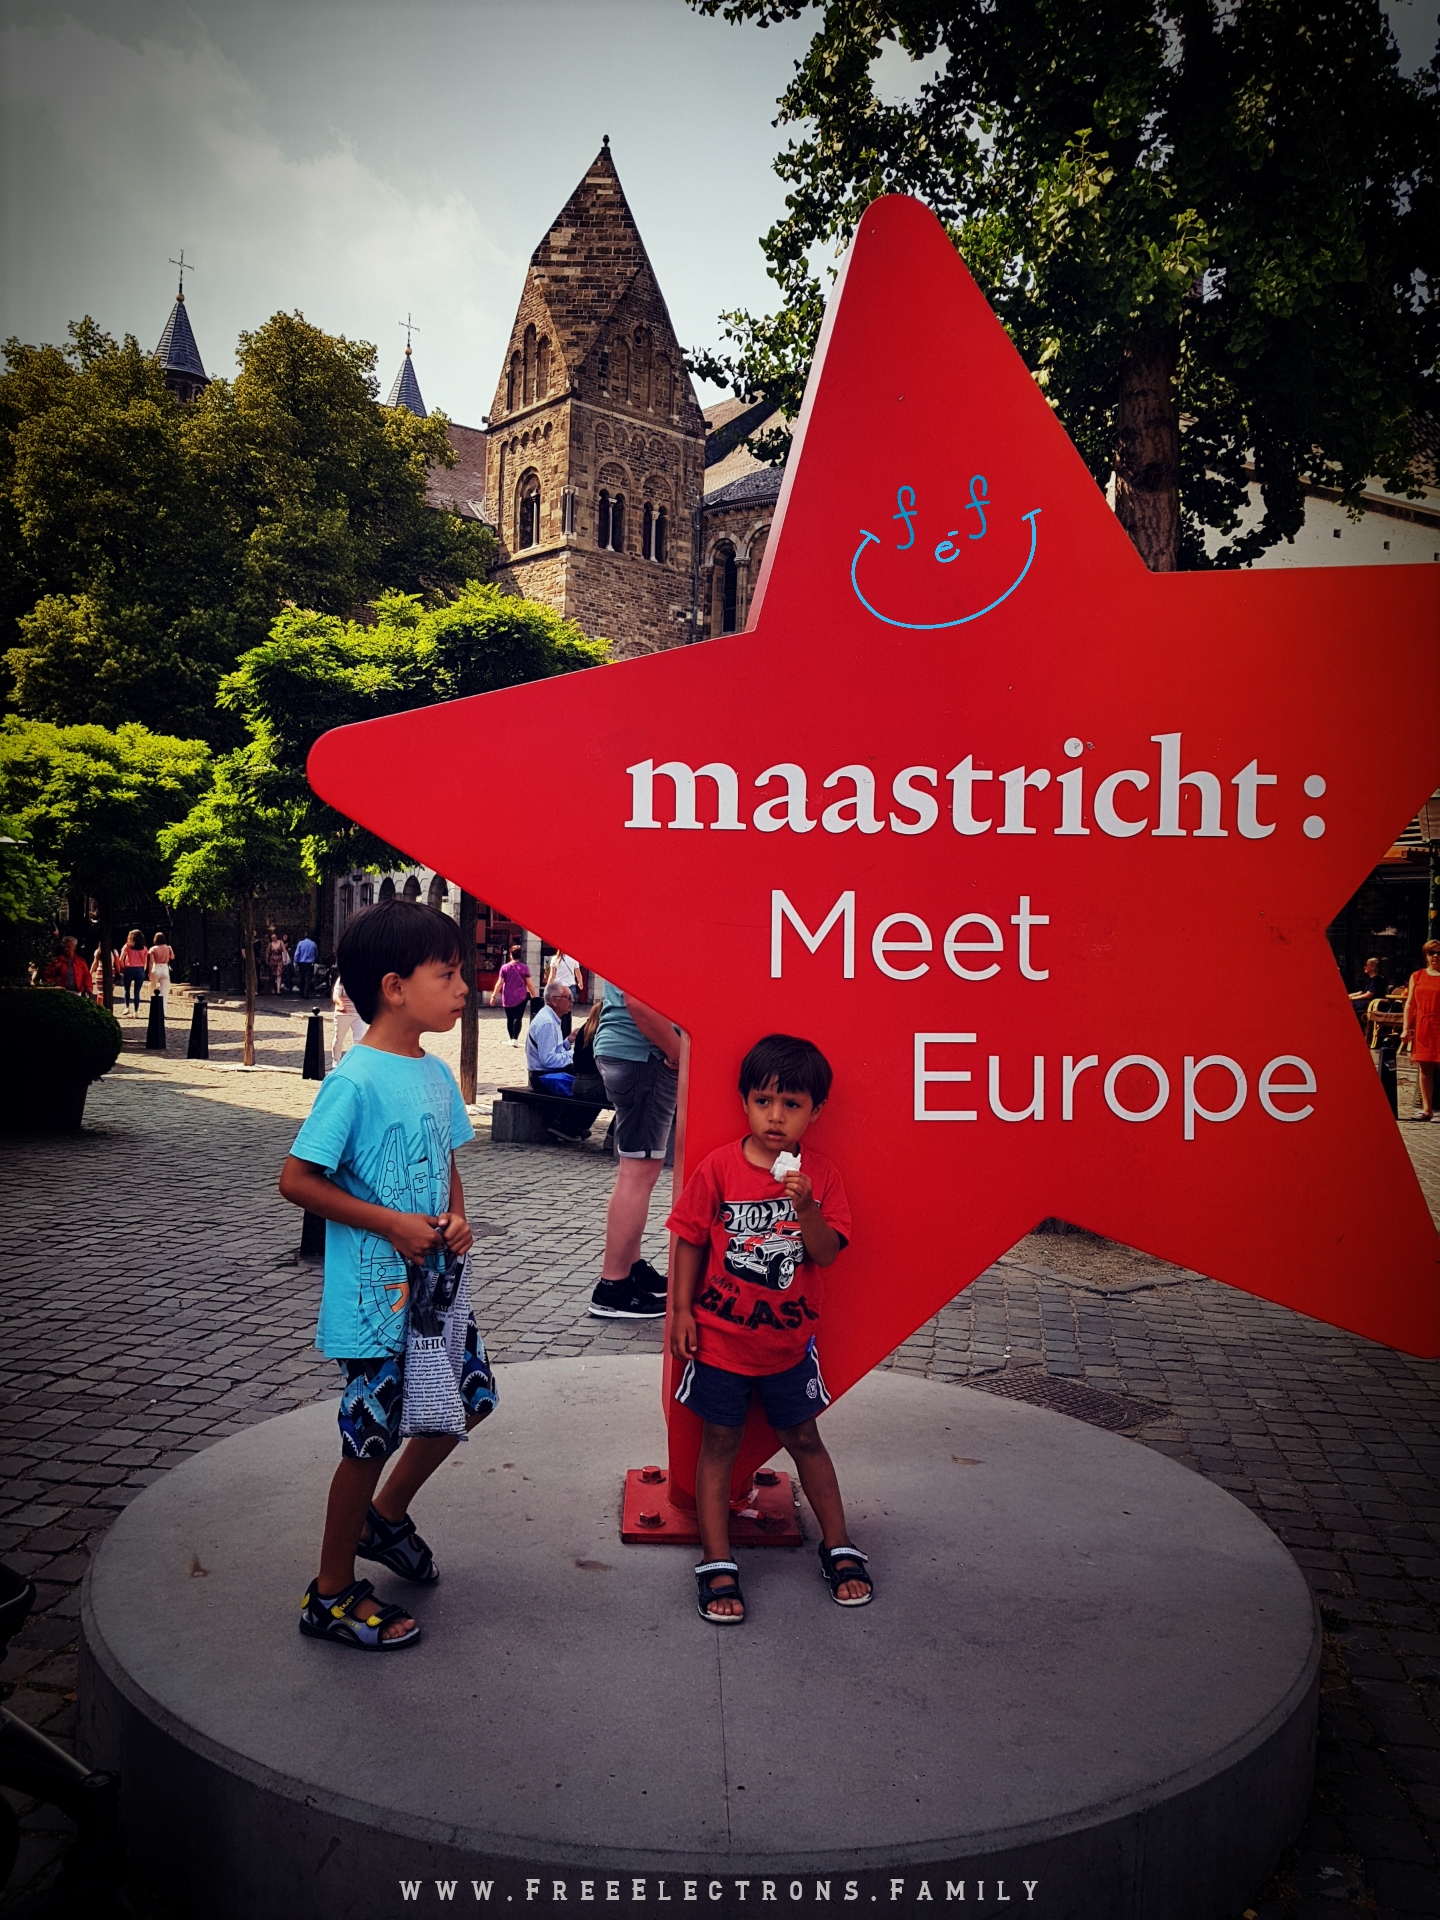 """Two young kids, looking tired, at a sign that reads """"maastricht: Meet Europe.  #FreeElectrons.Family - camping road trip Europe Maastricht"""